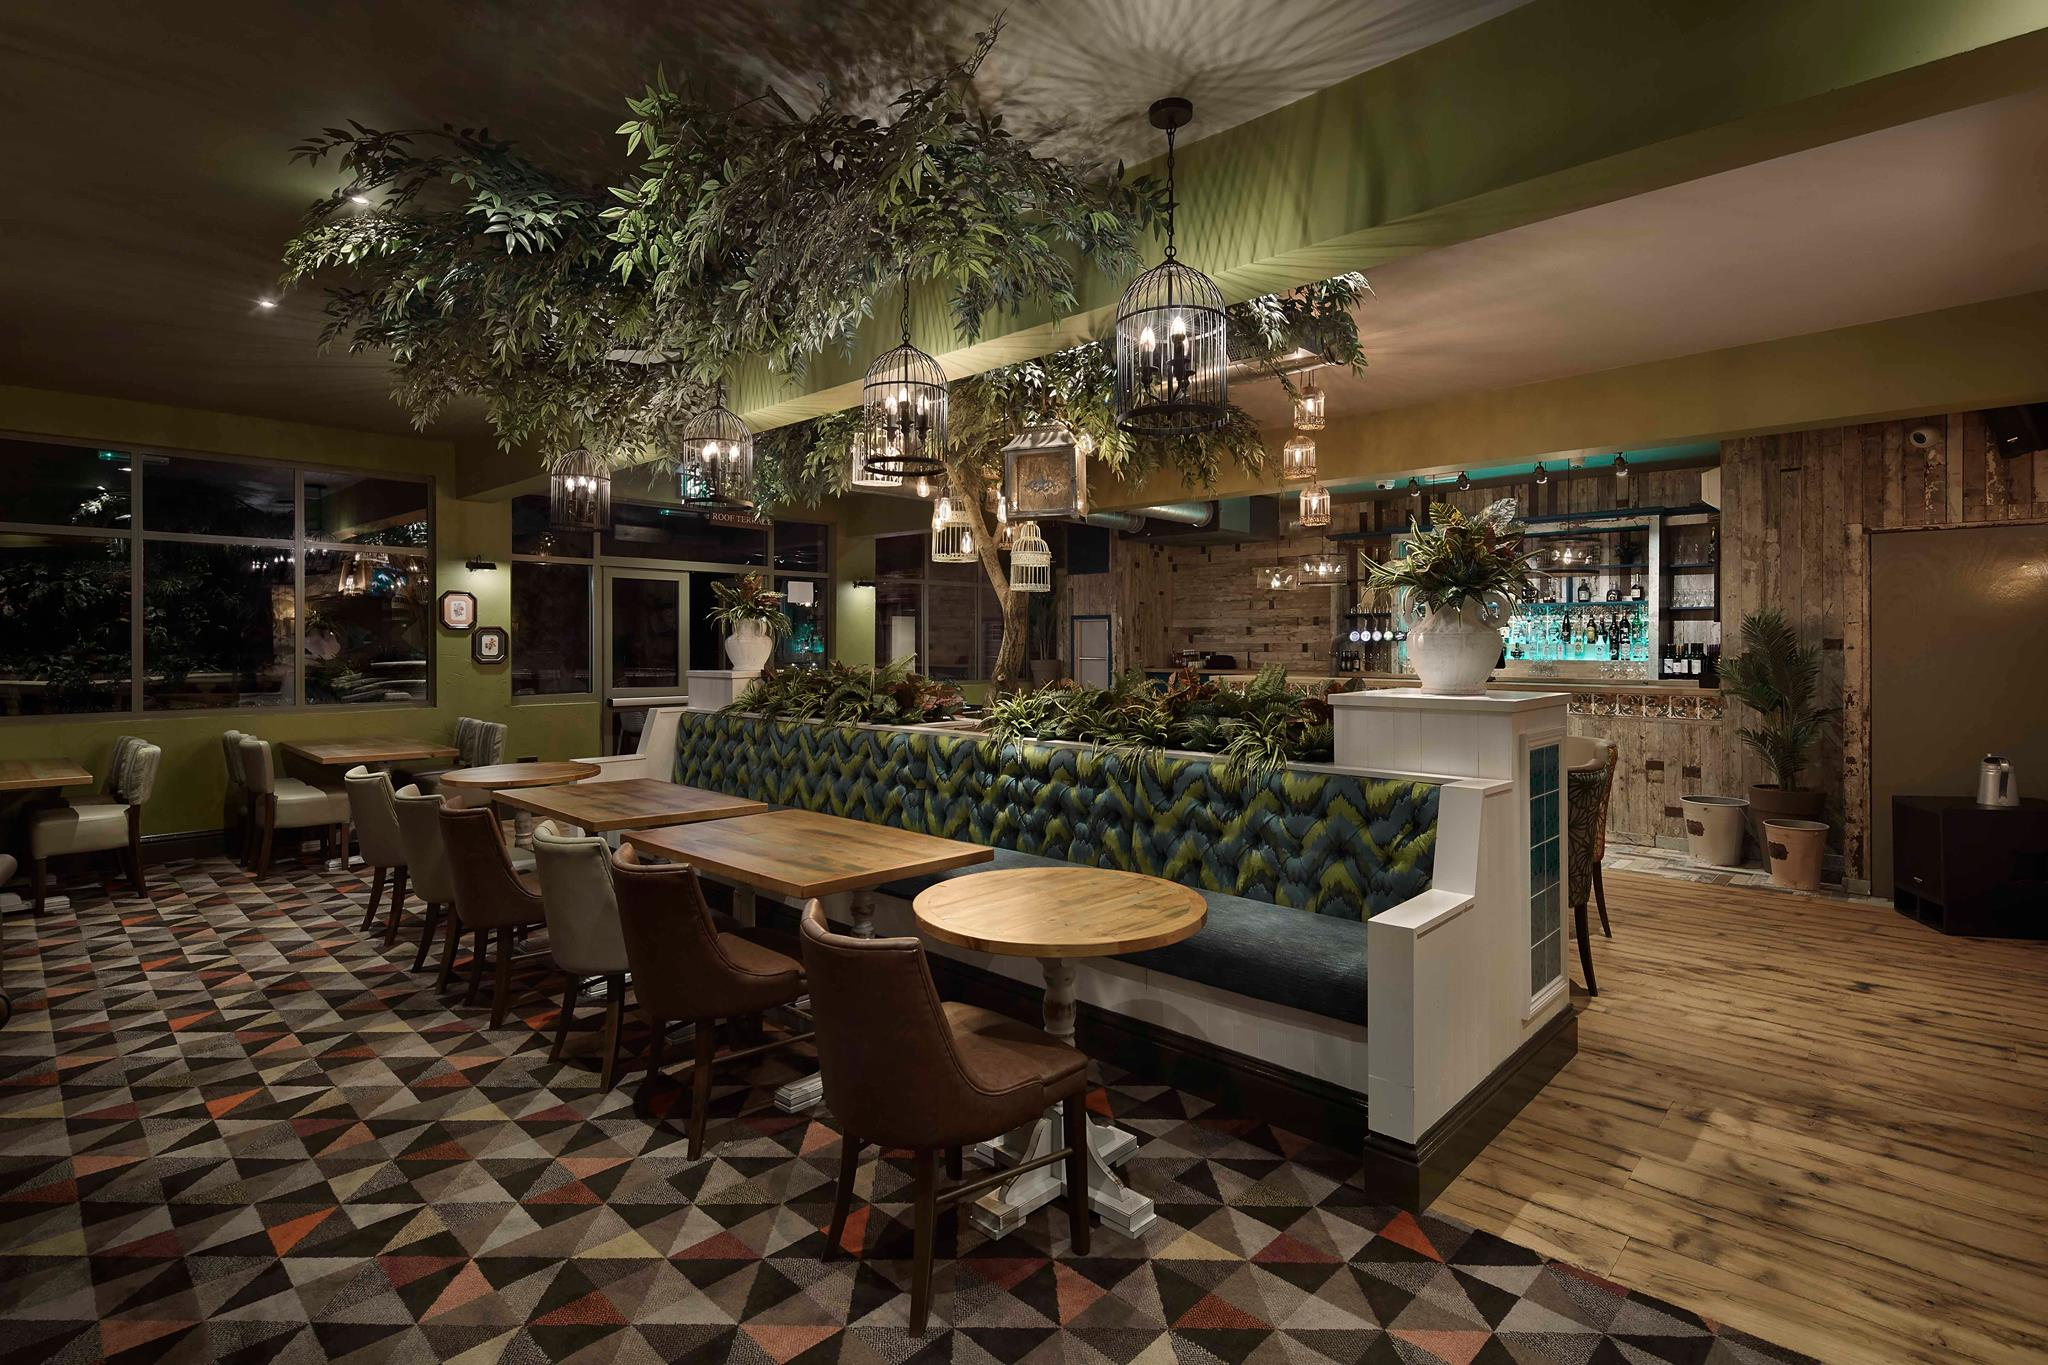 Potting Shed Bar & Gardens latest Bar in Southport